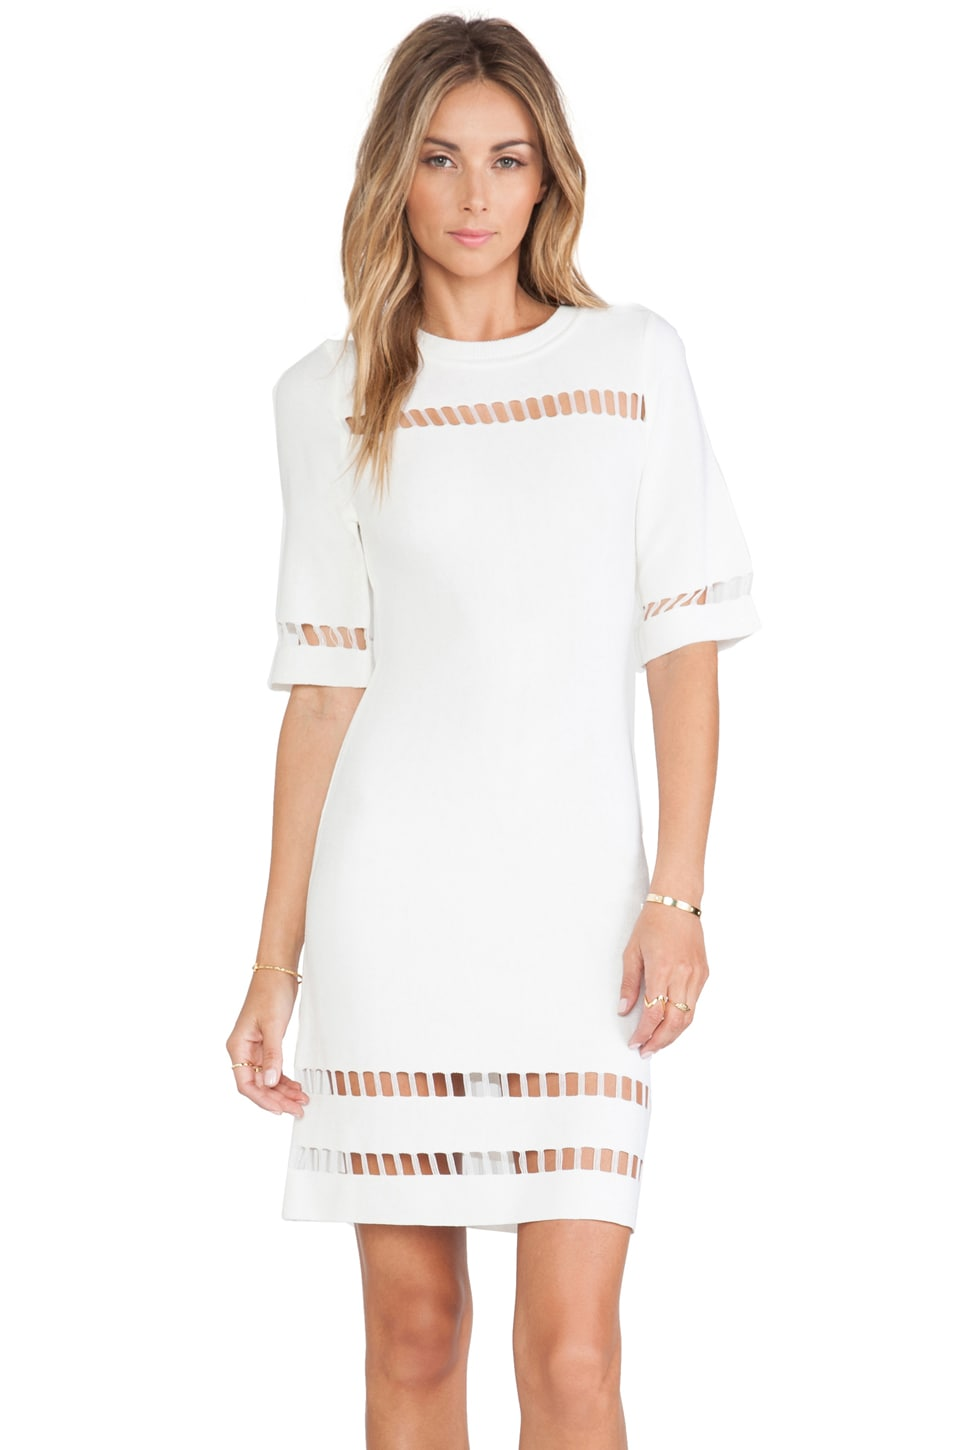 J.O.A. Short Sleeve Dress in Ivory